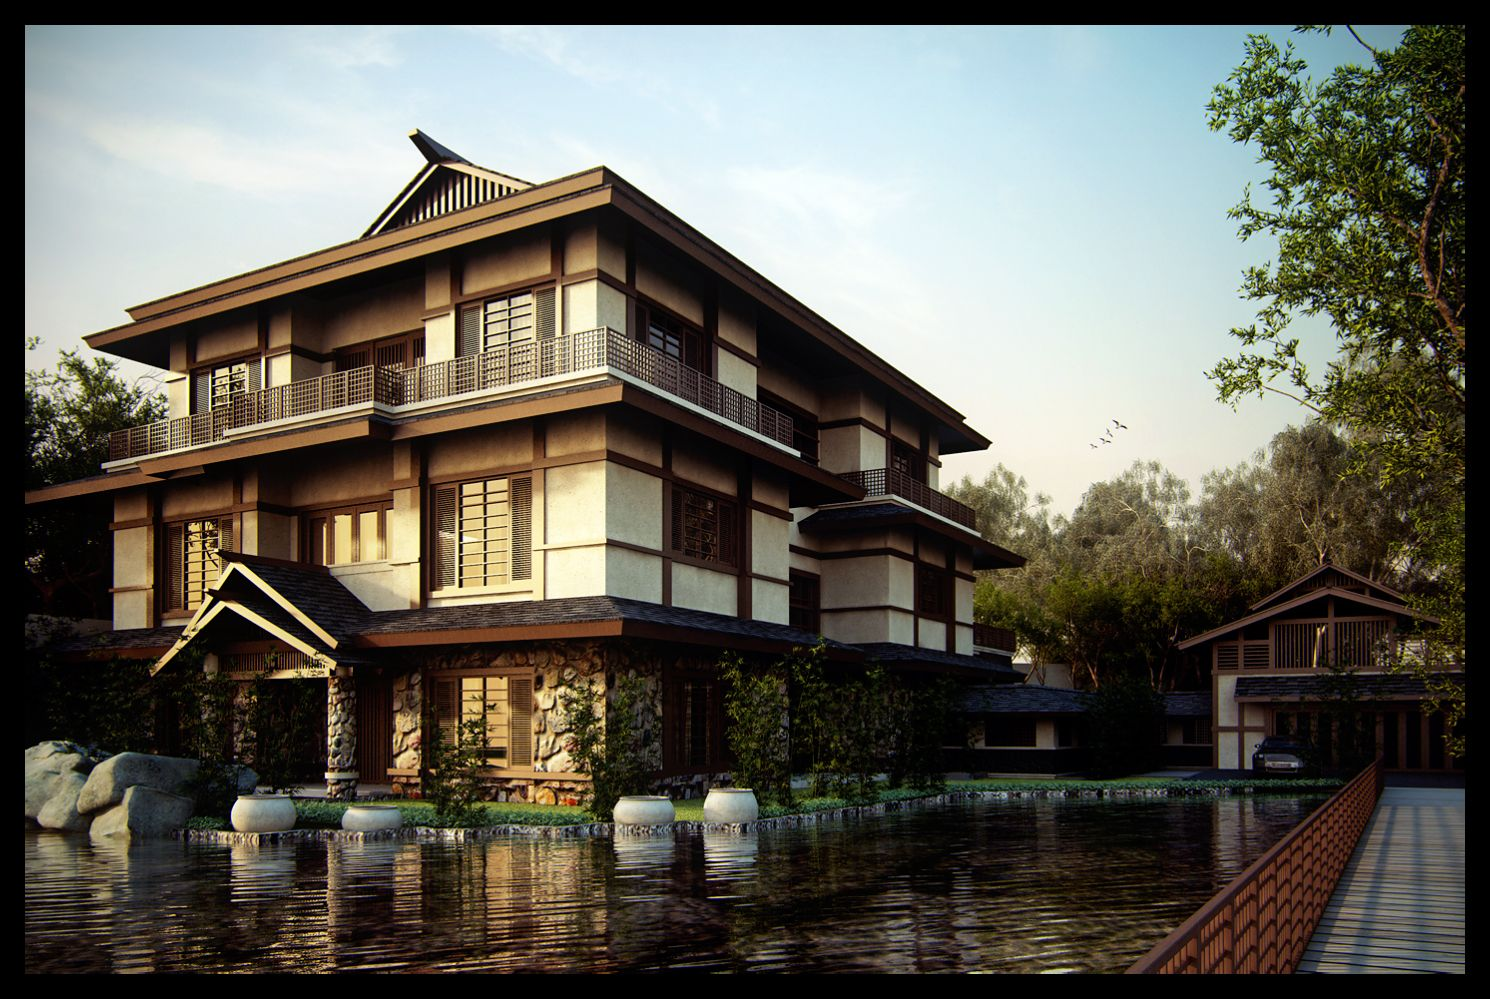 Traditional Japanese Home Design traditional japanese house whole floor of a traditional japanese house build in 1934 which Px House Design Picture Traditional Japanese Home Design Japanese House By Neellss On Deviantart Interiordir